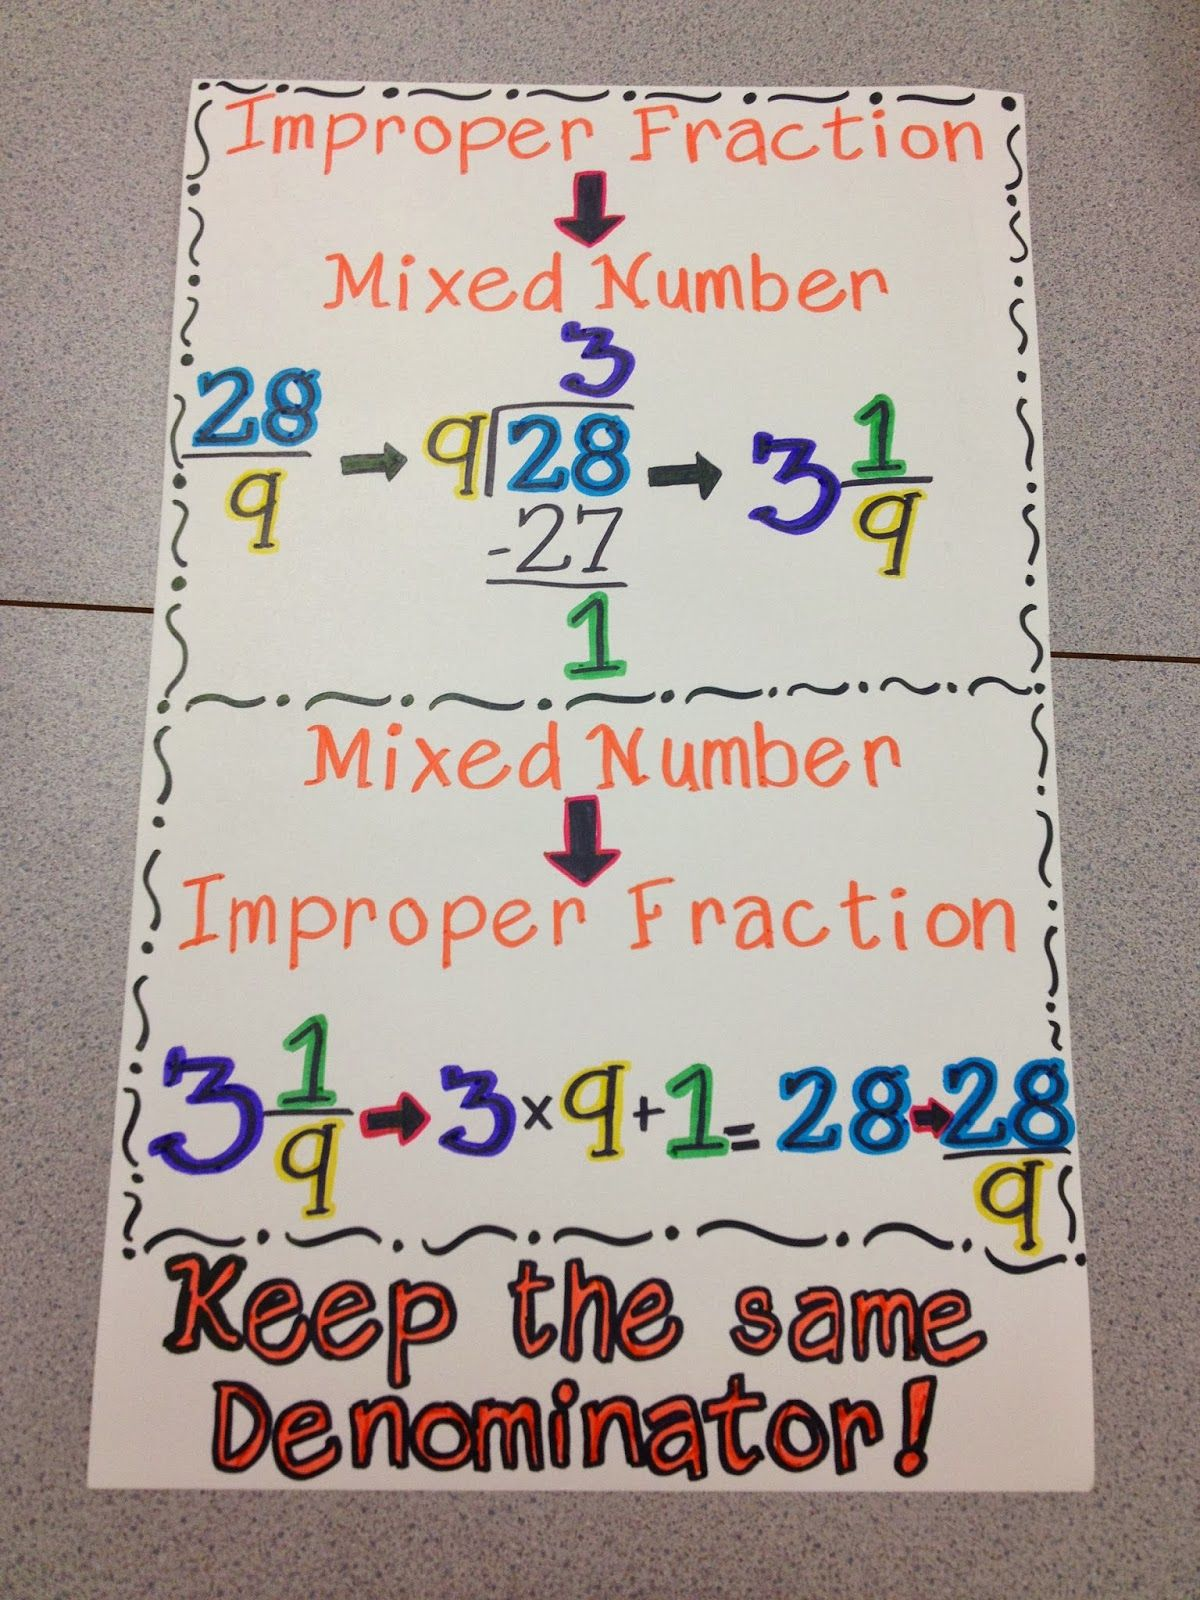 retrieved r, 10/30/14: improper fraction & mixed number conversions